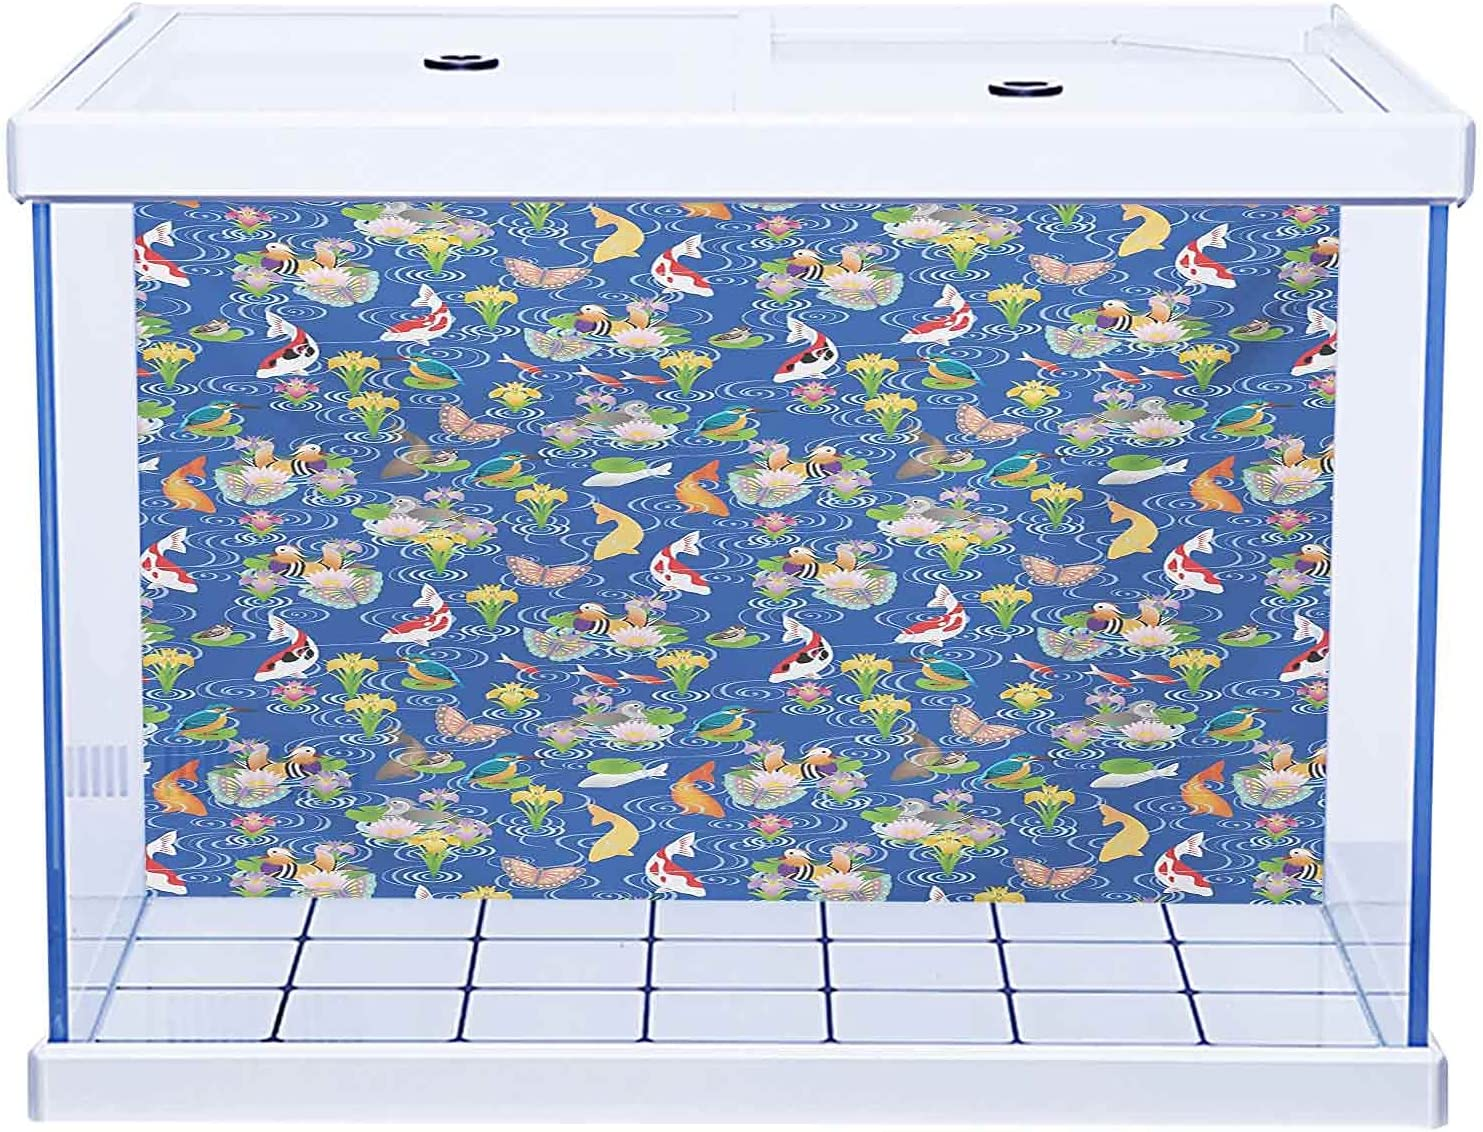 Aquarium Sticker 3D Special price One Side Fish and Bas Tank Blue Ivory Wicker shipfree